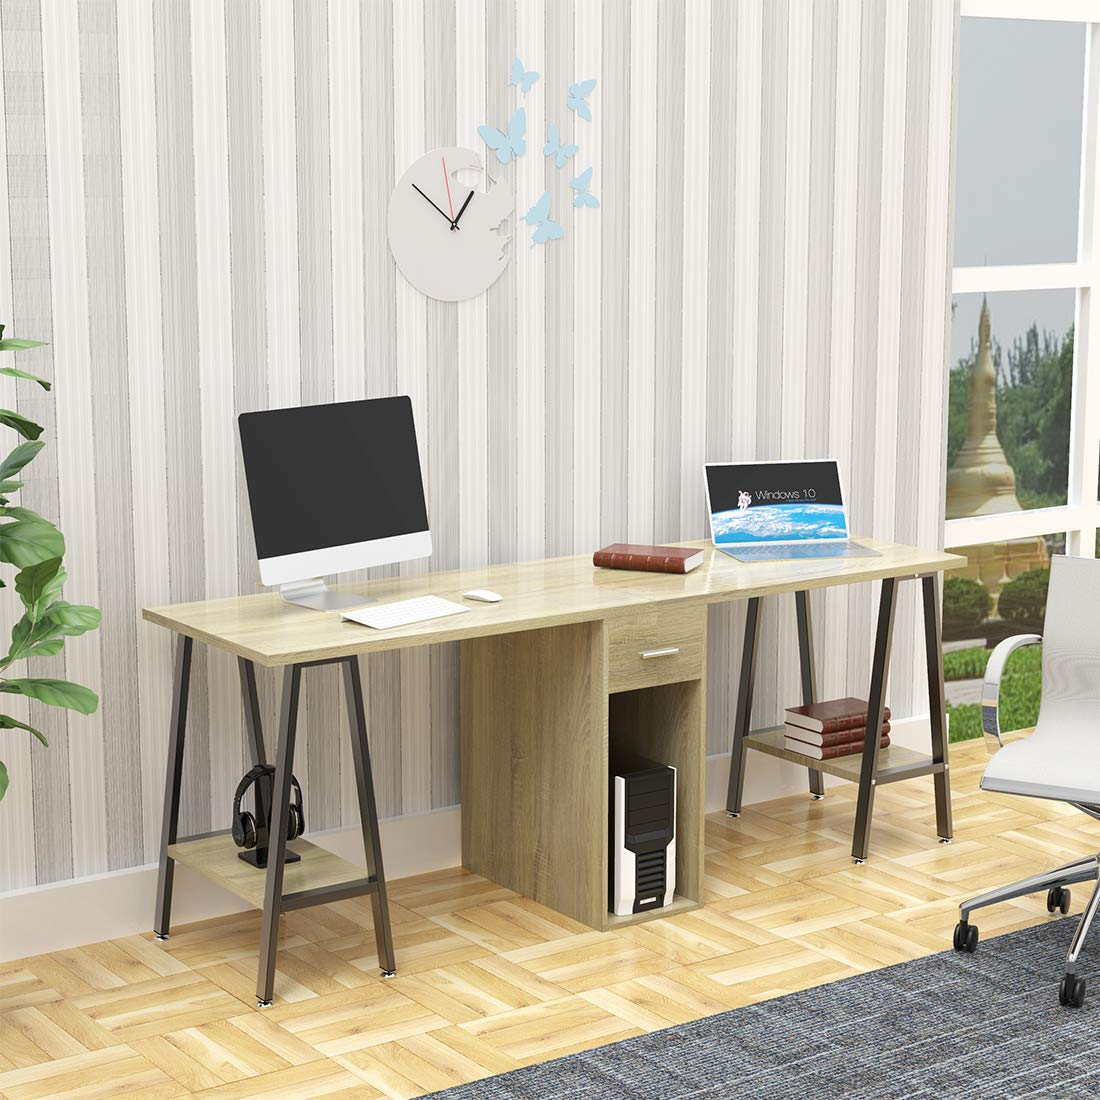 DEWEL Two Person Computer Desk with Drawers 78 Extra Large Long Computer Desk Double Workstation Computer desks with Storage Wood Big Dual Computer Desk Executive Office Desk